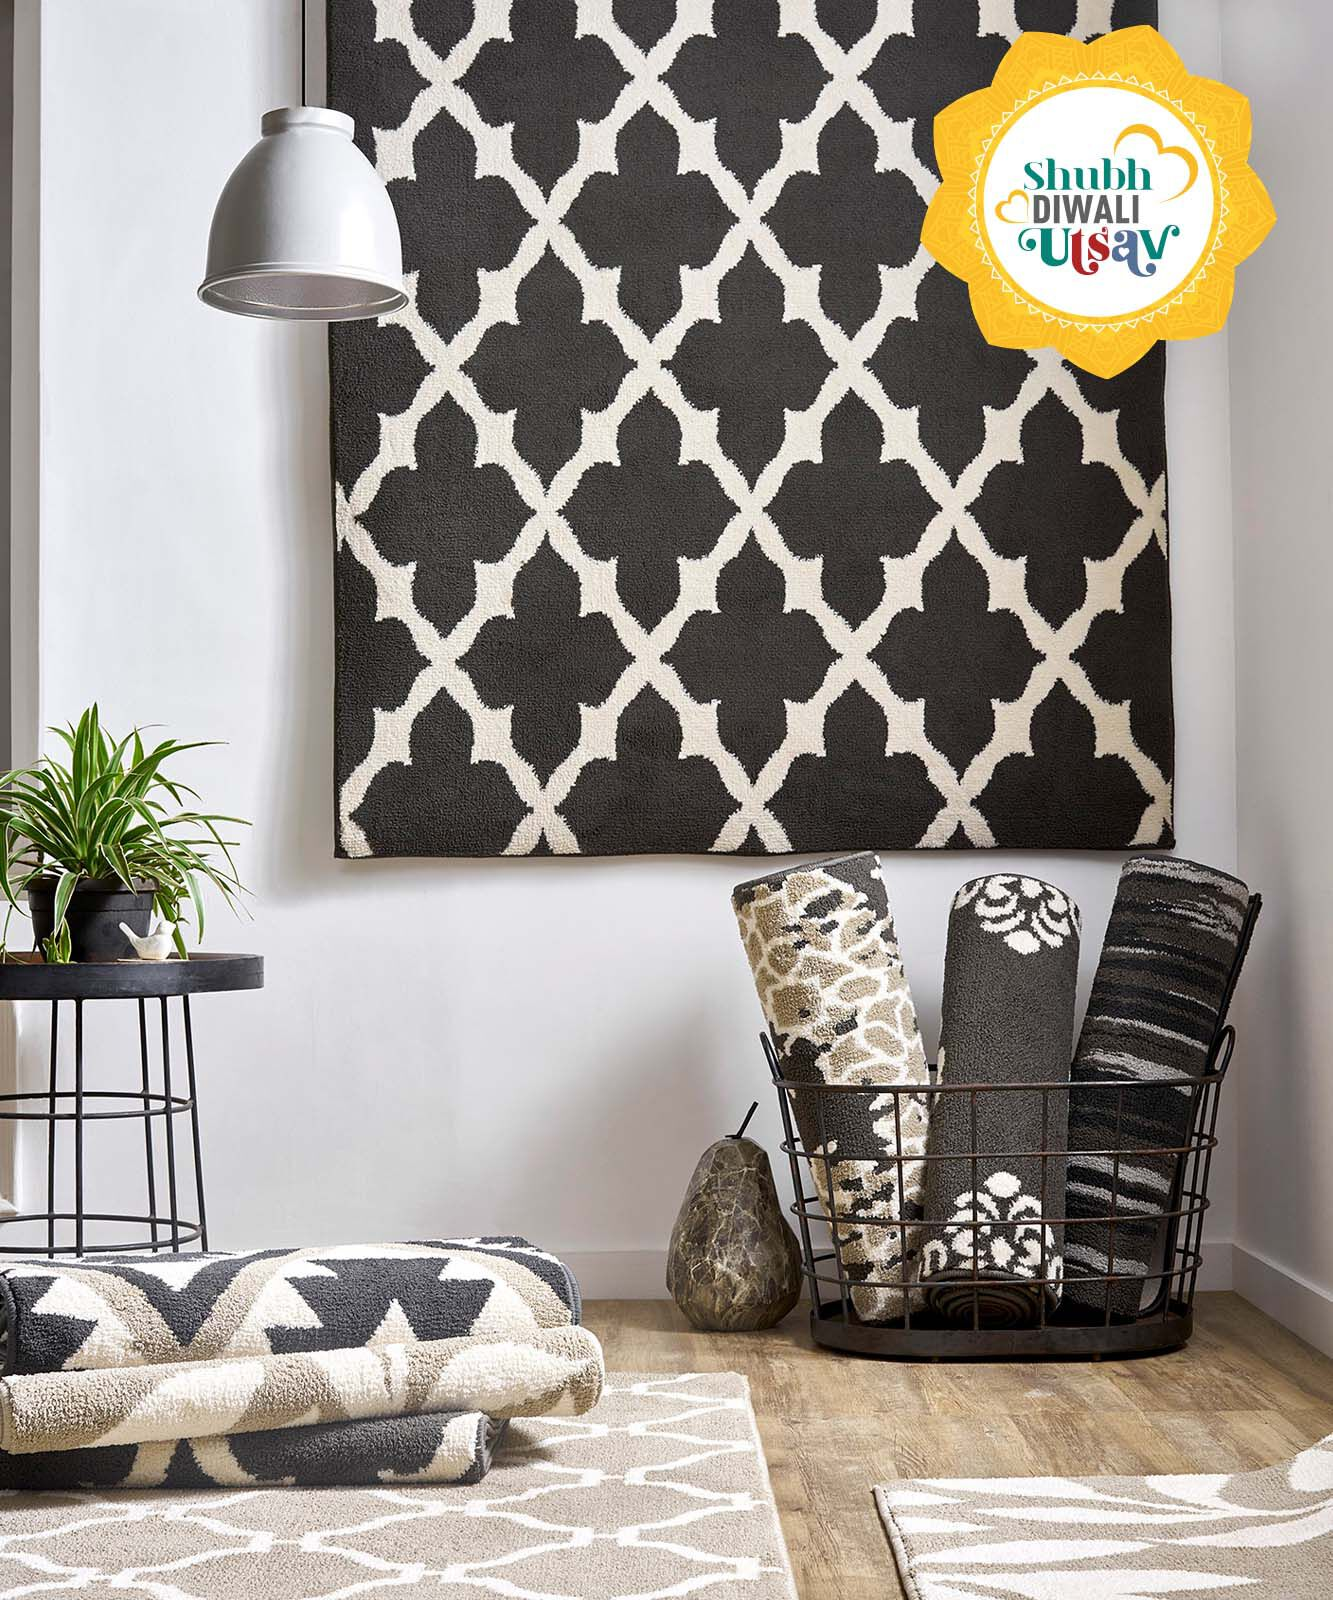 Rugs on 40% discount